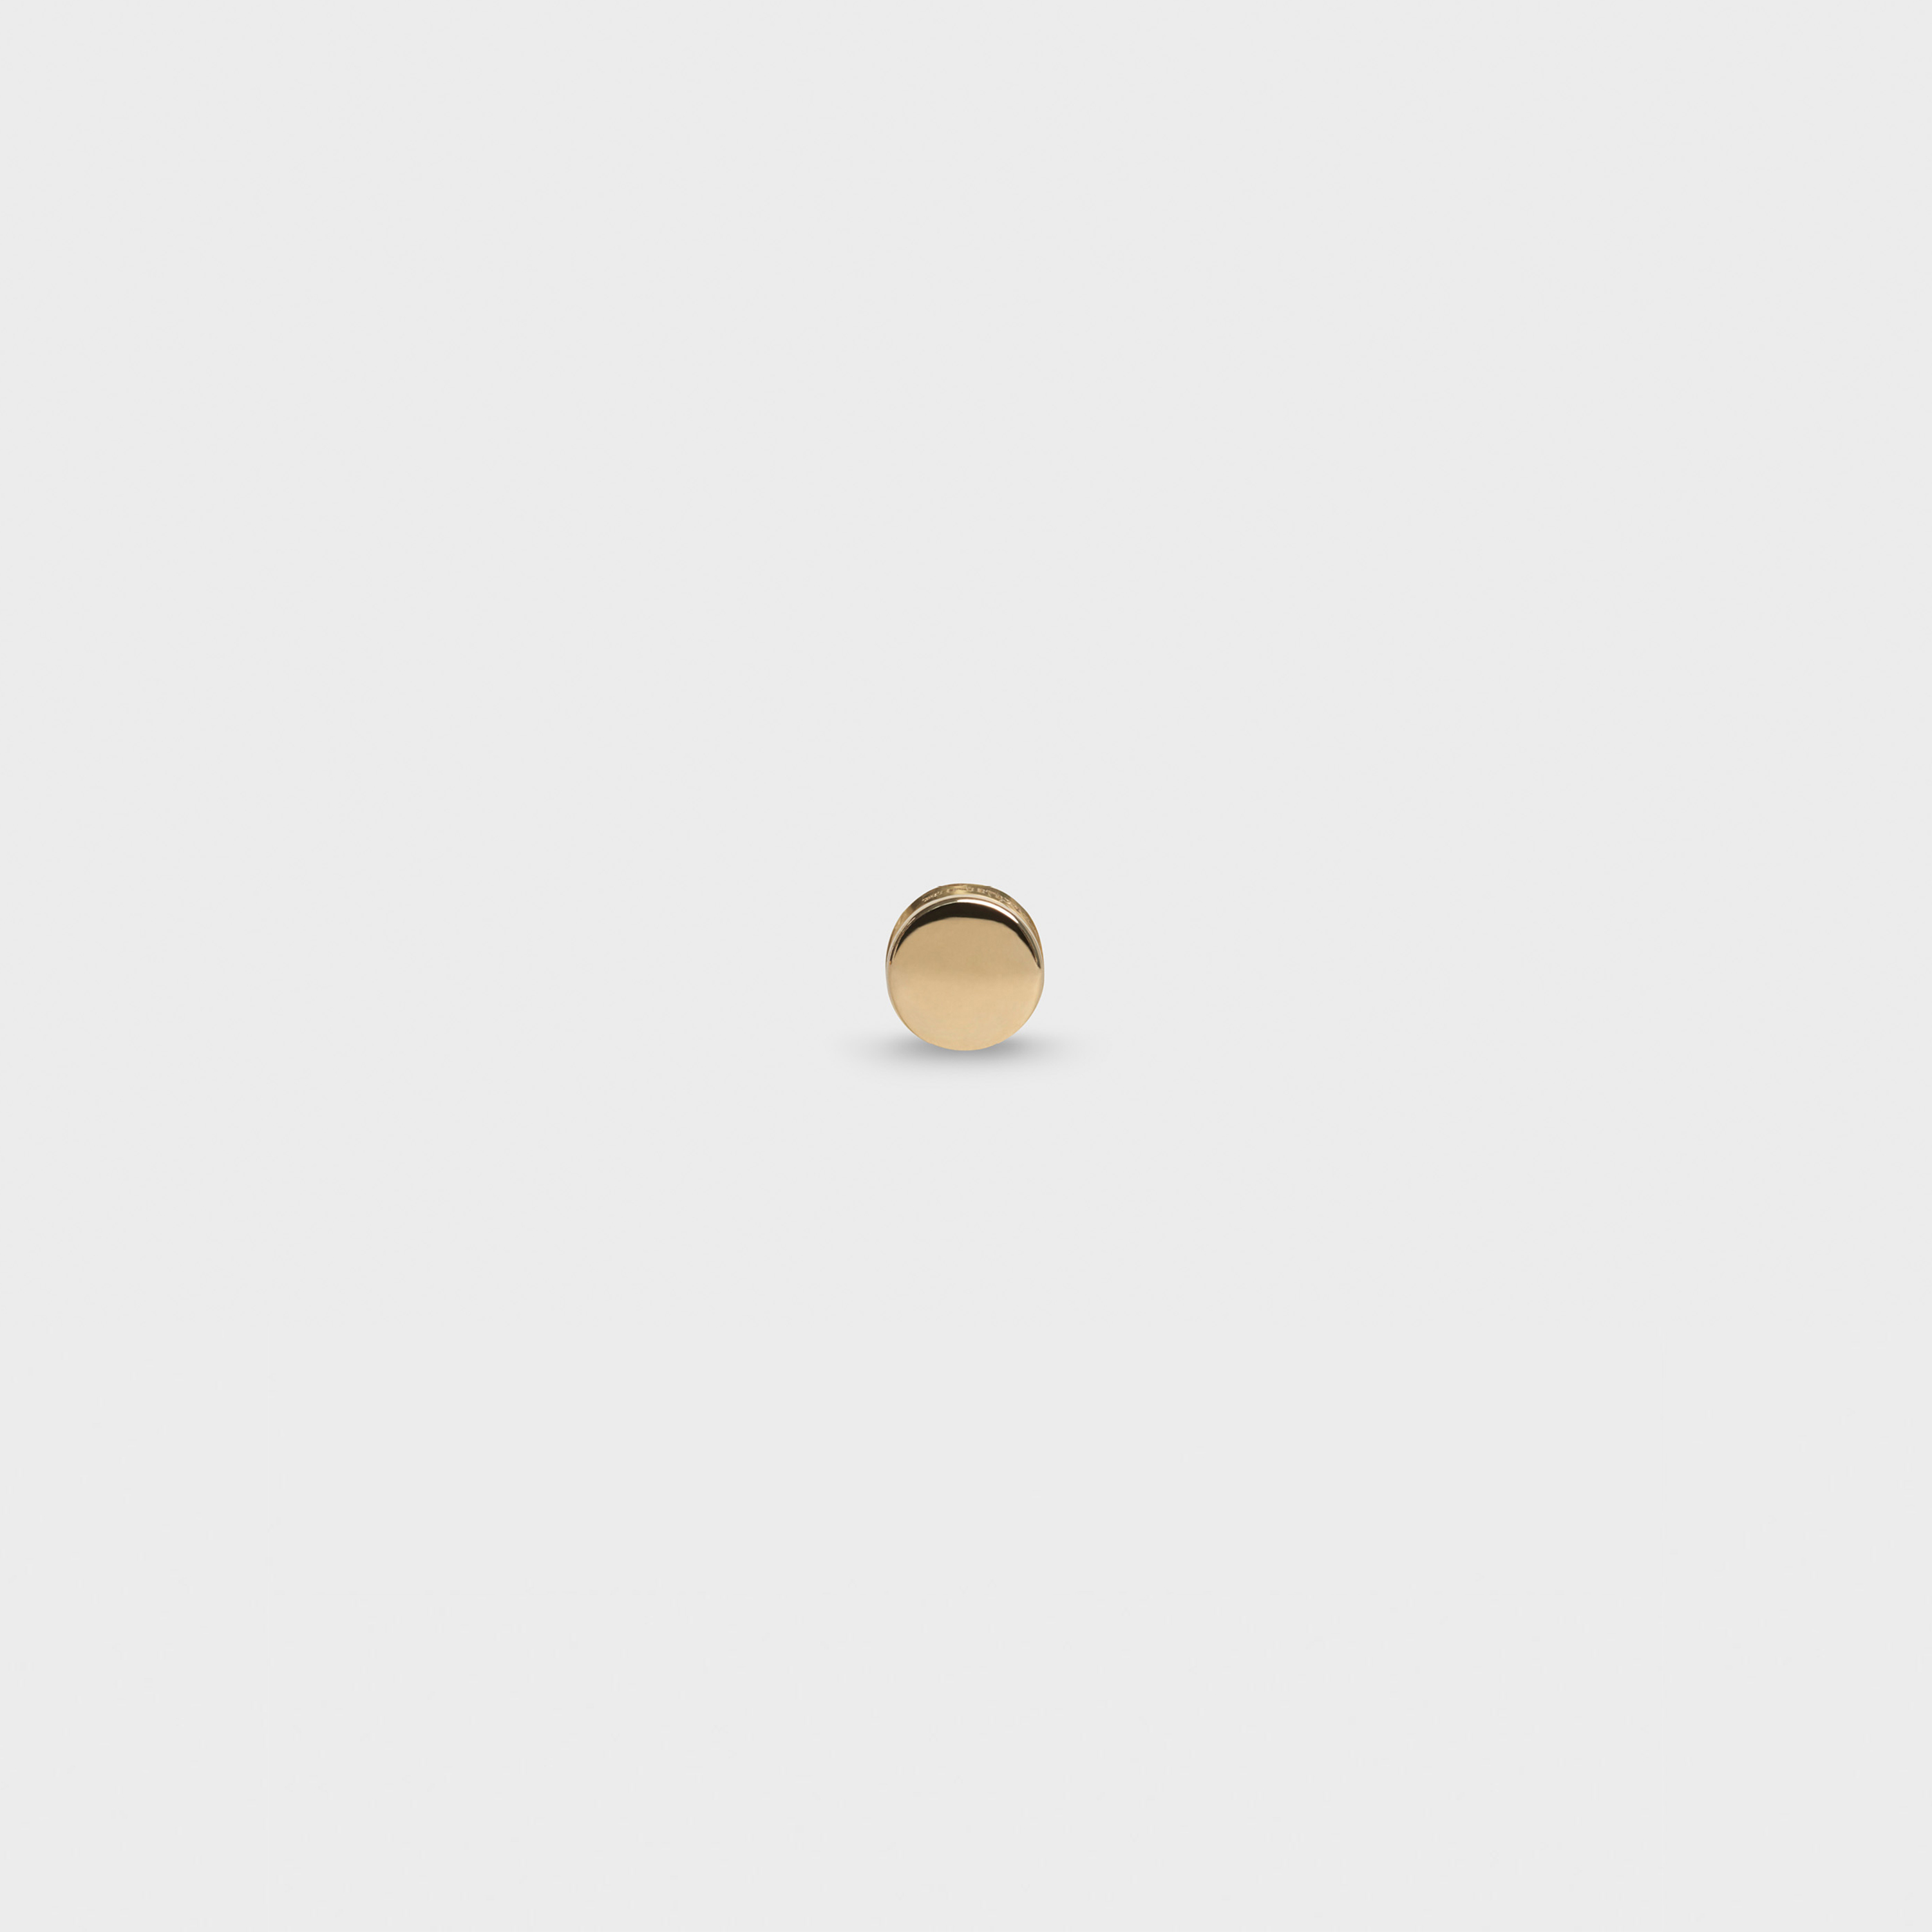 Celine Sentimental Round Stud in Yellow Gold | CELINE